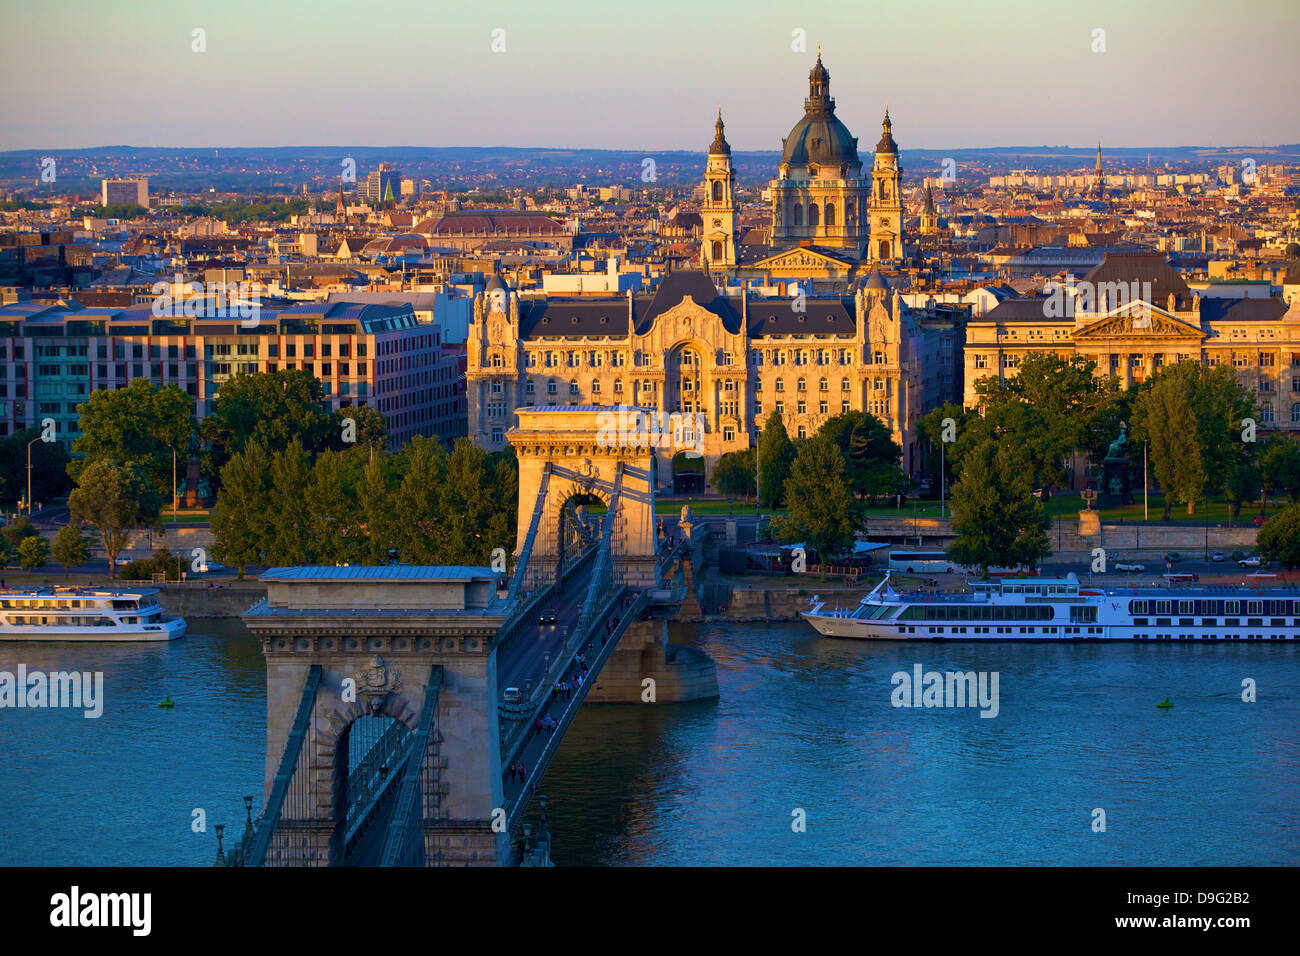 Budapest skyline and River Danube, UNESCO World Heritage Site, Budapest, Hungary - Stock Image